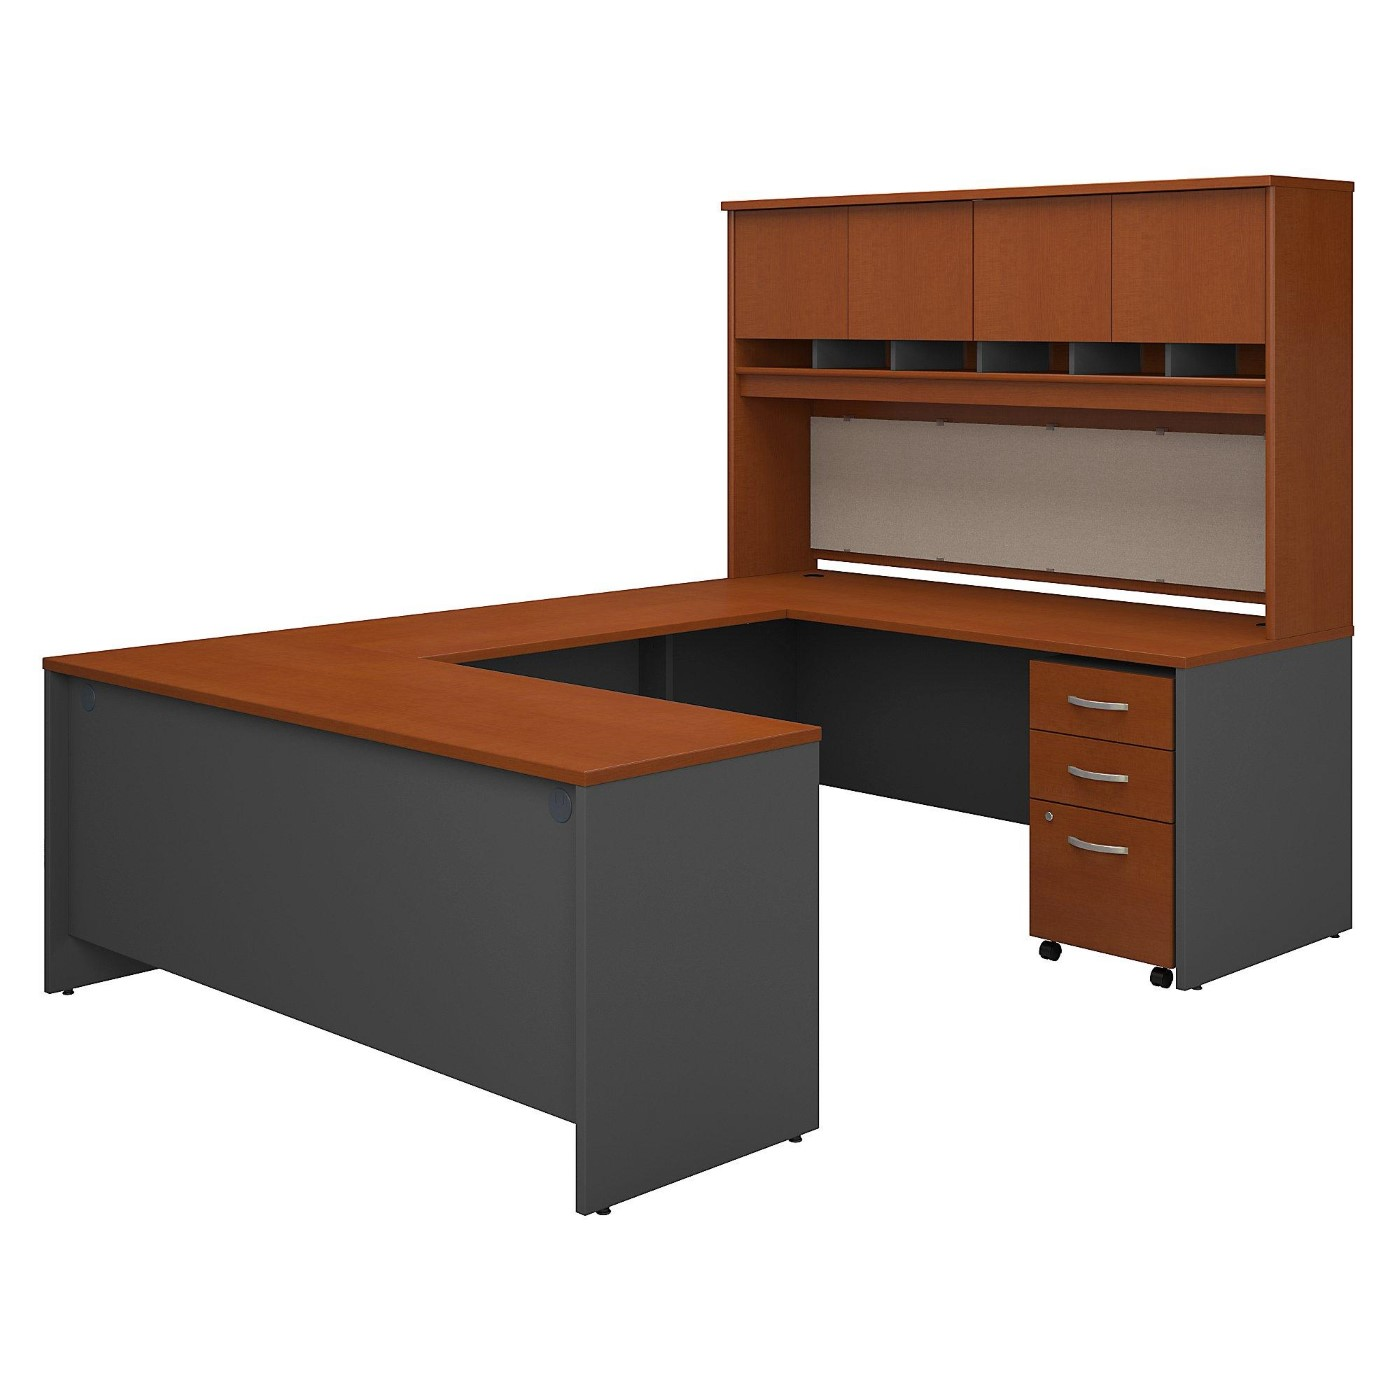 BUSH BUSINESS FURNITURE SERIES C 72W U SHAPED DESK WITH HUTCH AND STORAGE. FREE SHIPPING.  SALE DEDUCT 10% MORE ENTER '10percent' IN COUPON CODE BOX WHILE CHECKING OUT.